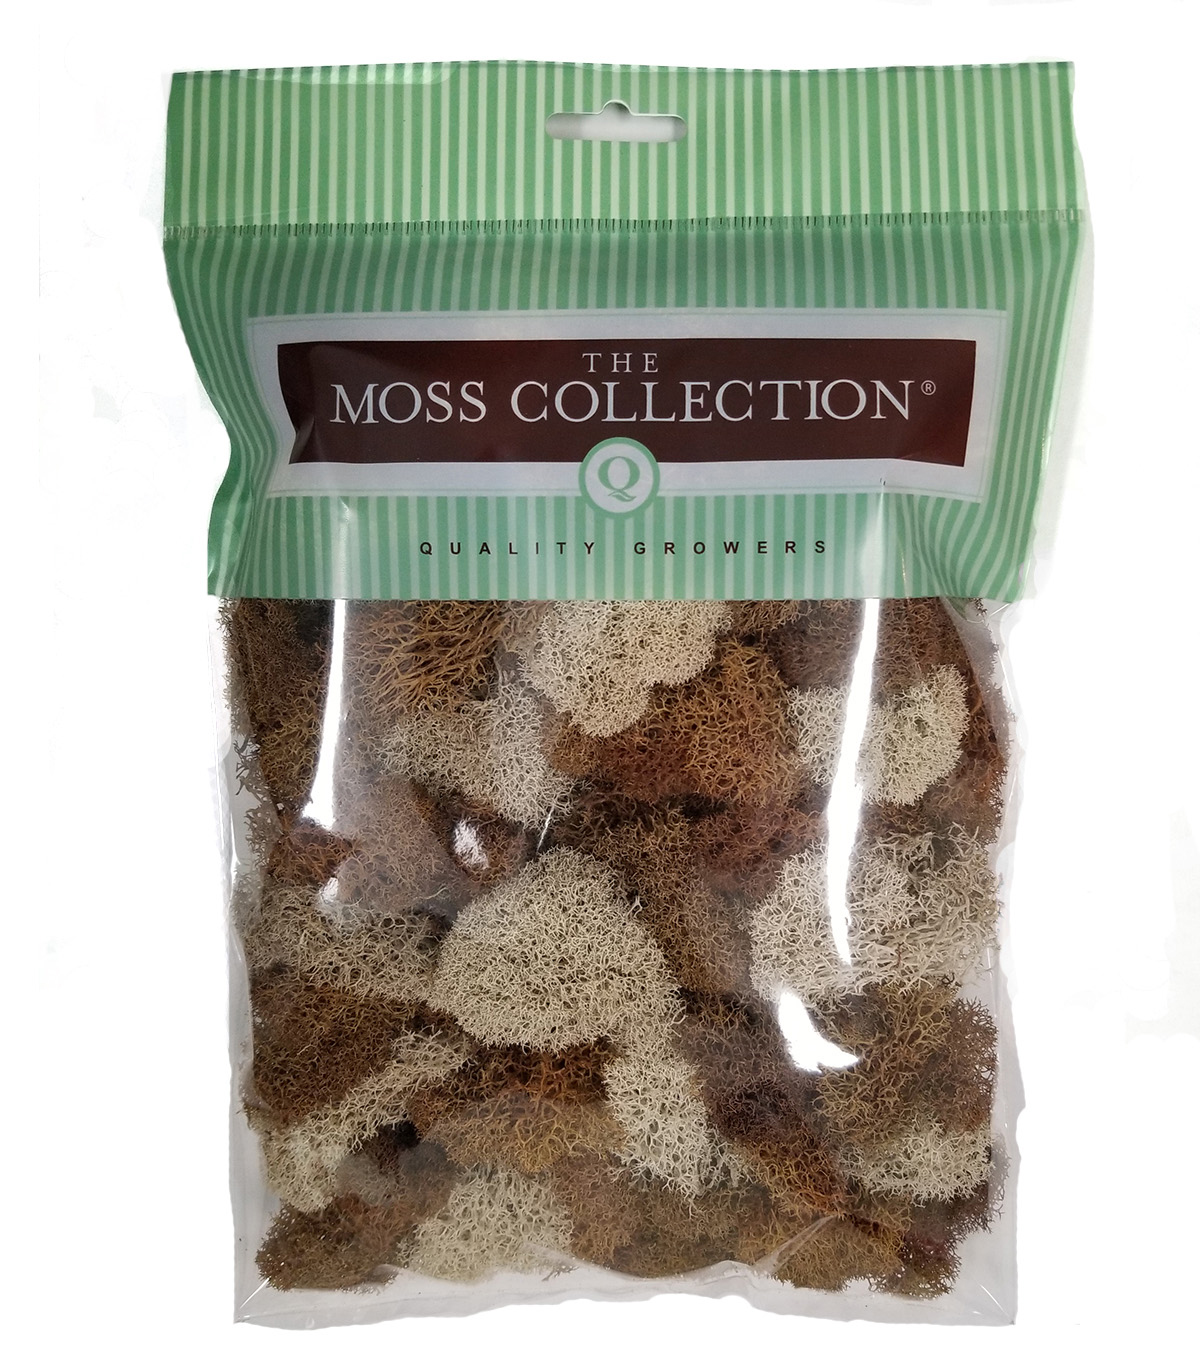 Quality Growers The Moss Collection Reindeer Moss-Natural & Walnut